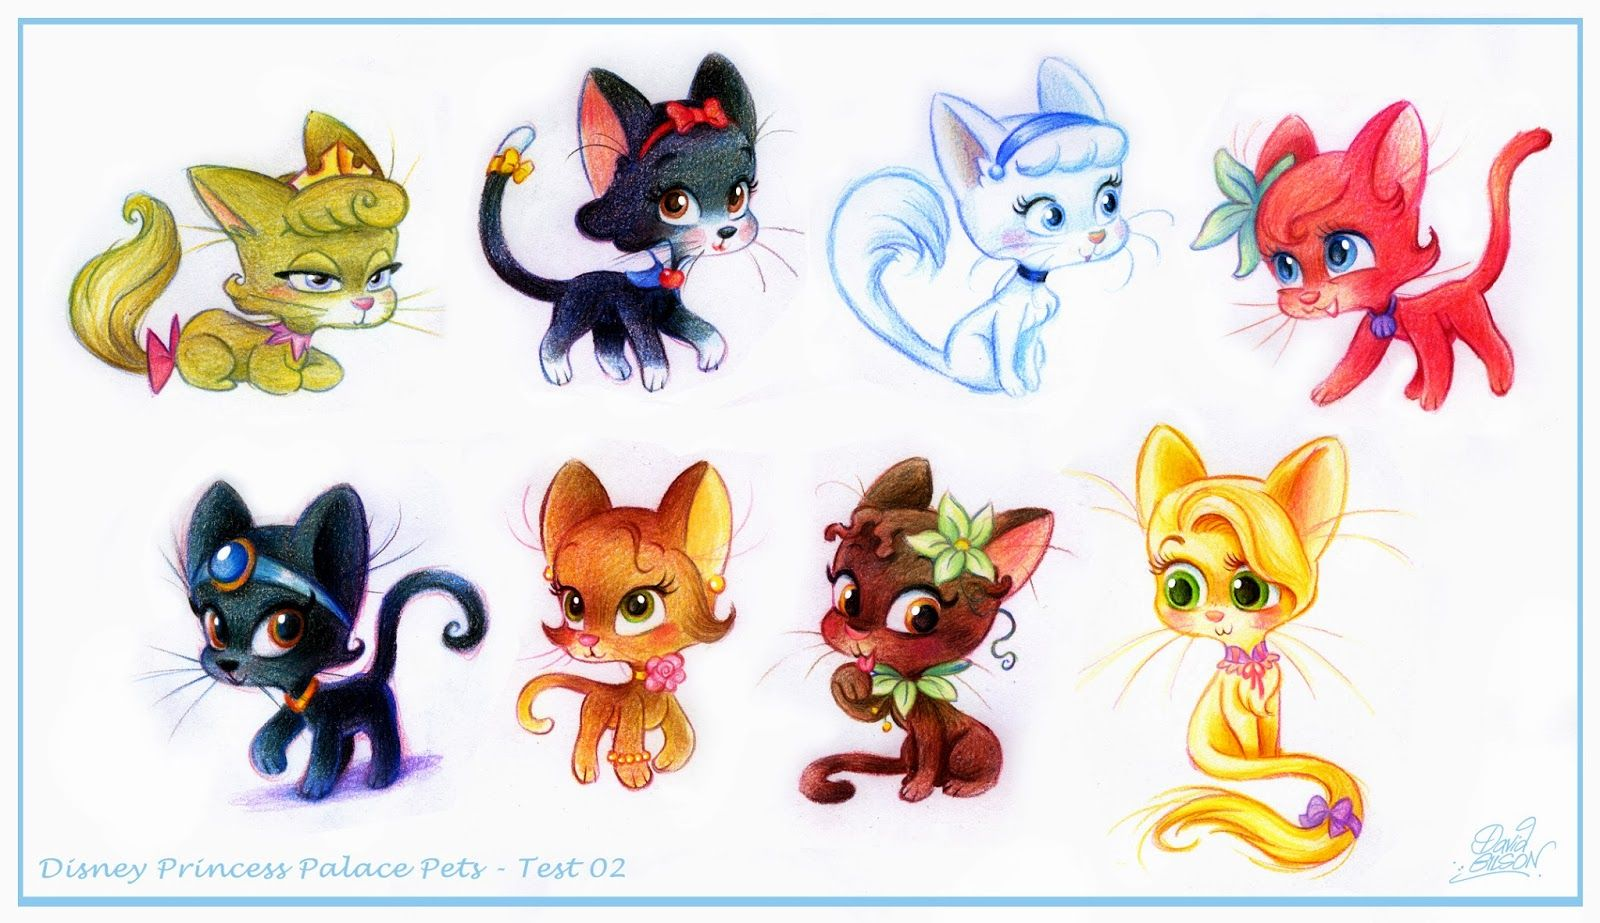 OMG this is so cute they are princess as animals ...